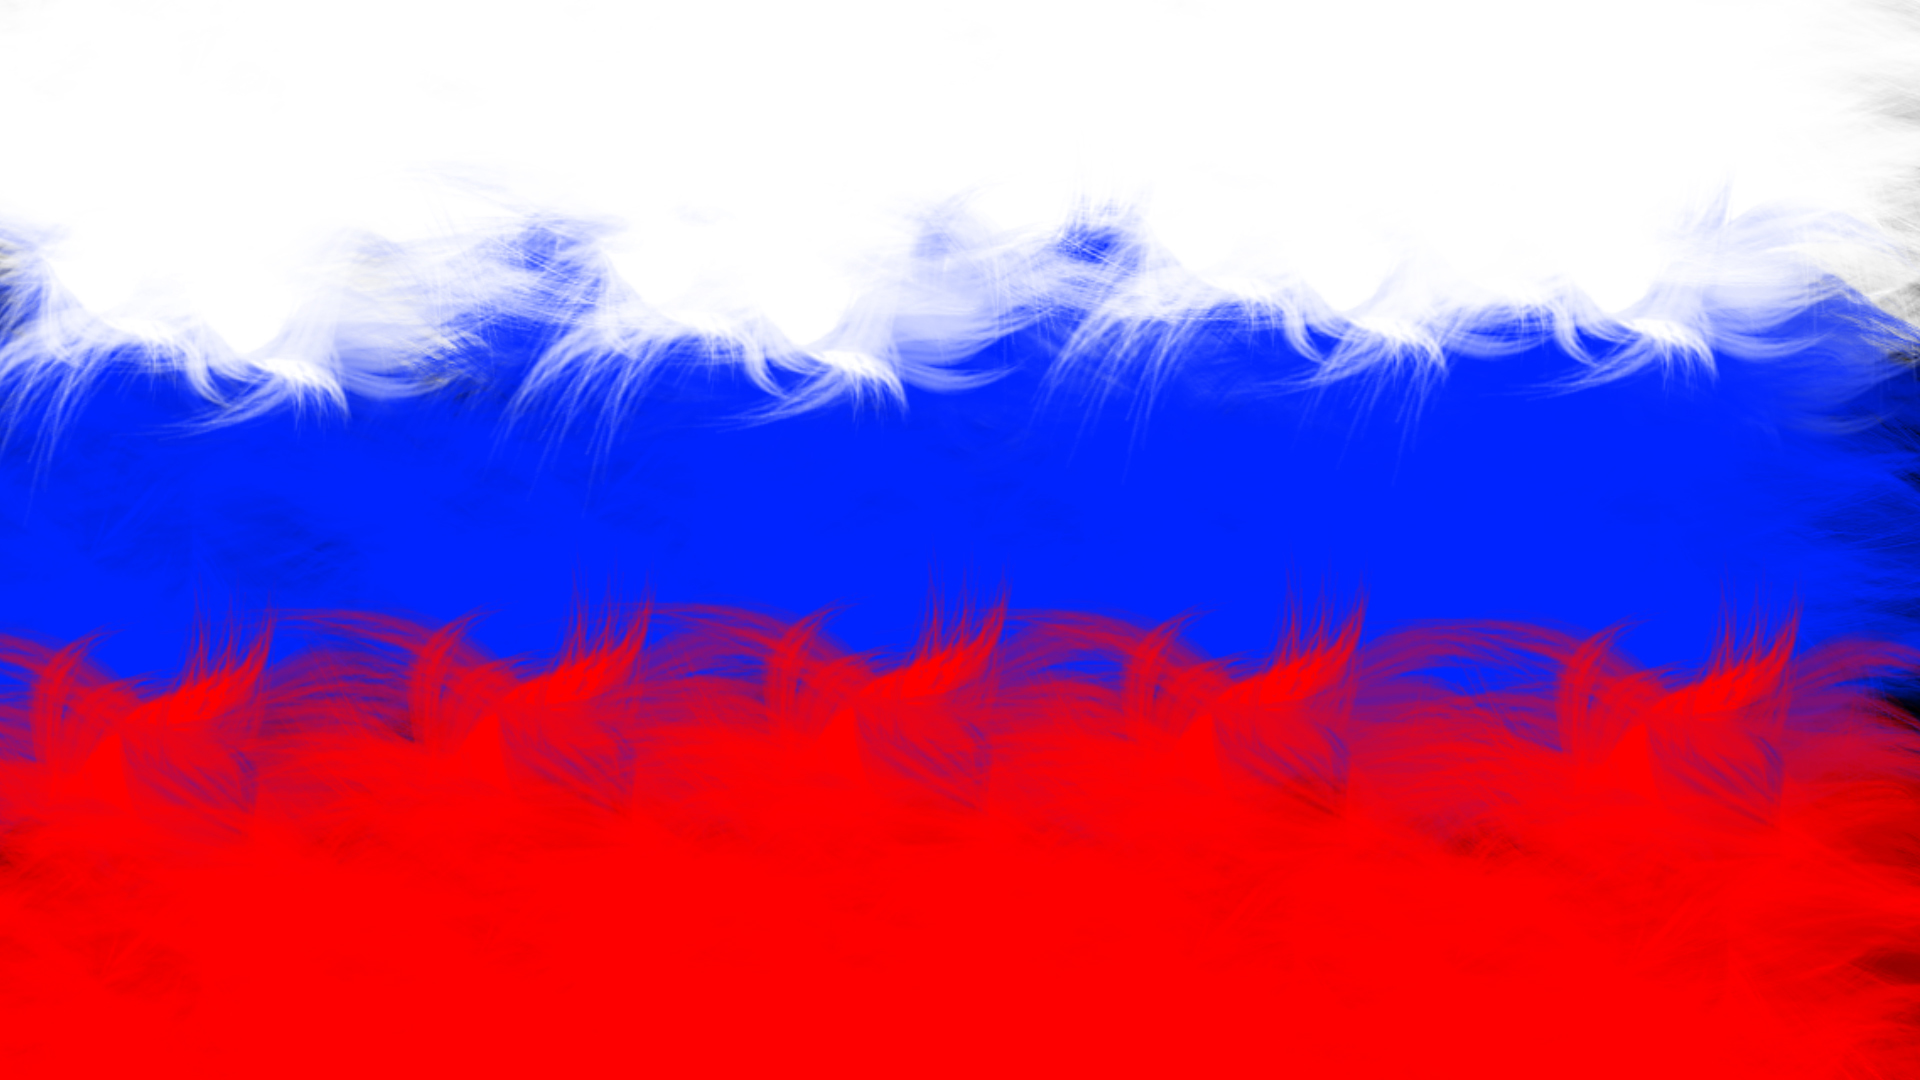 Download Wallpaper White Blue Red Paint Flag Putin Russia